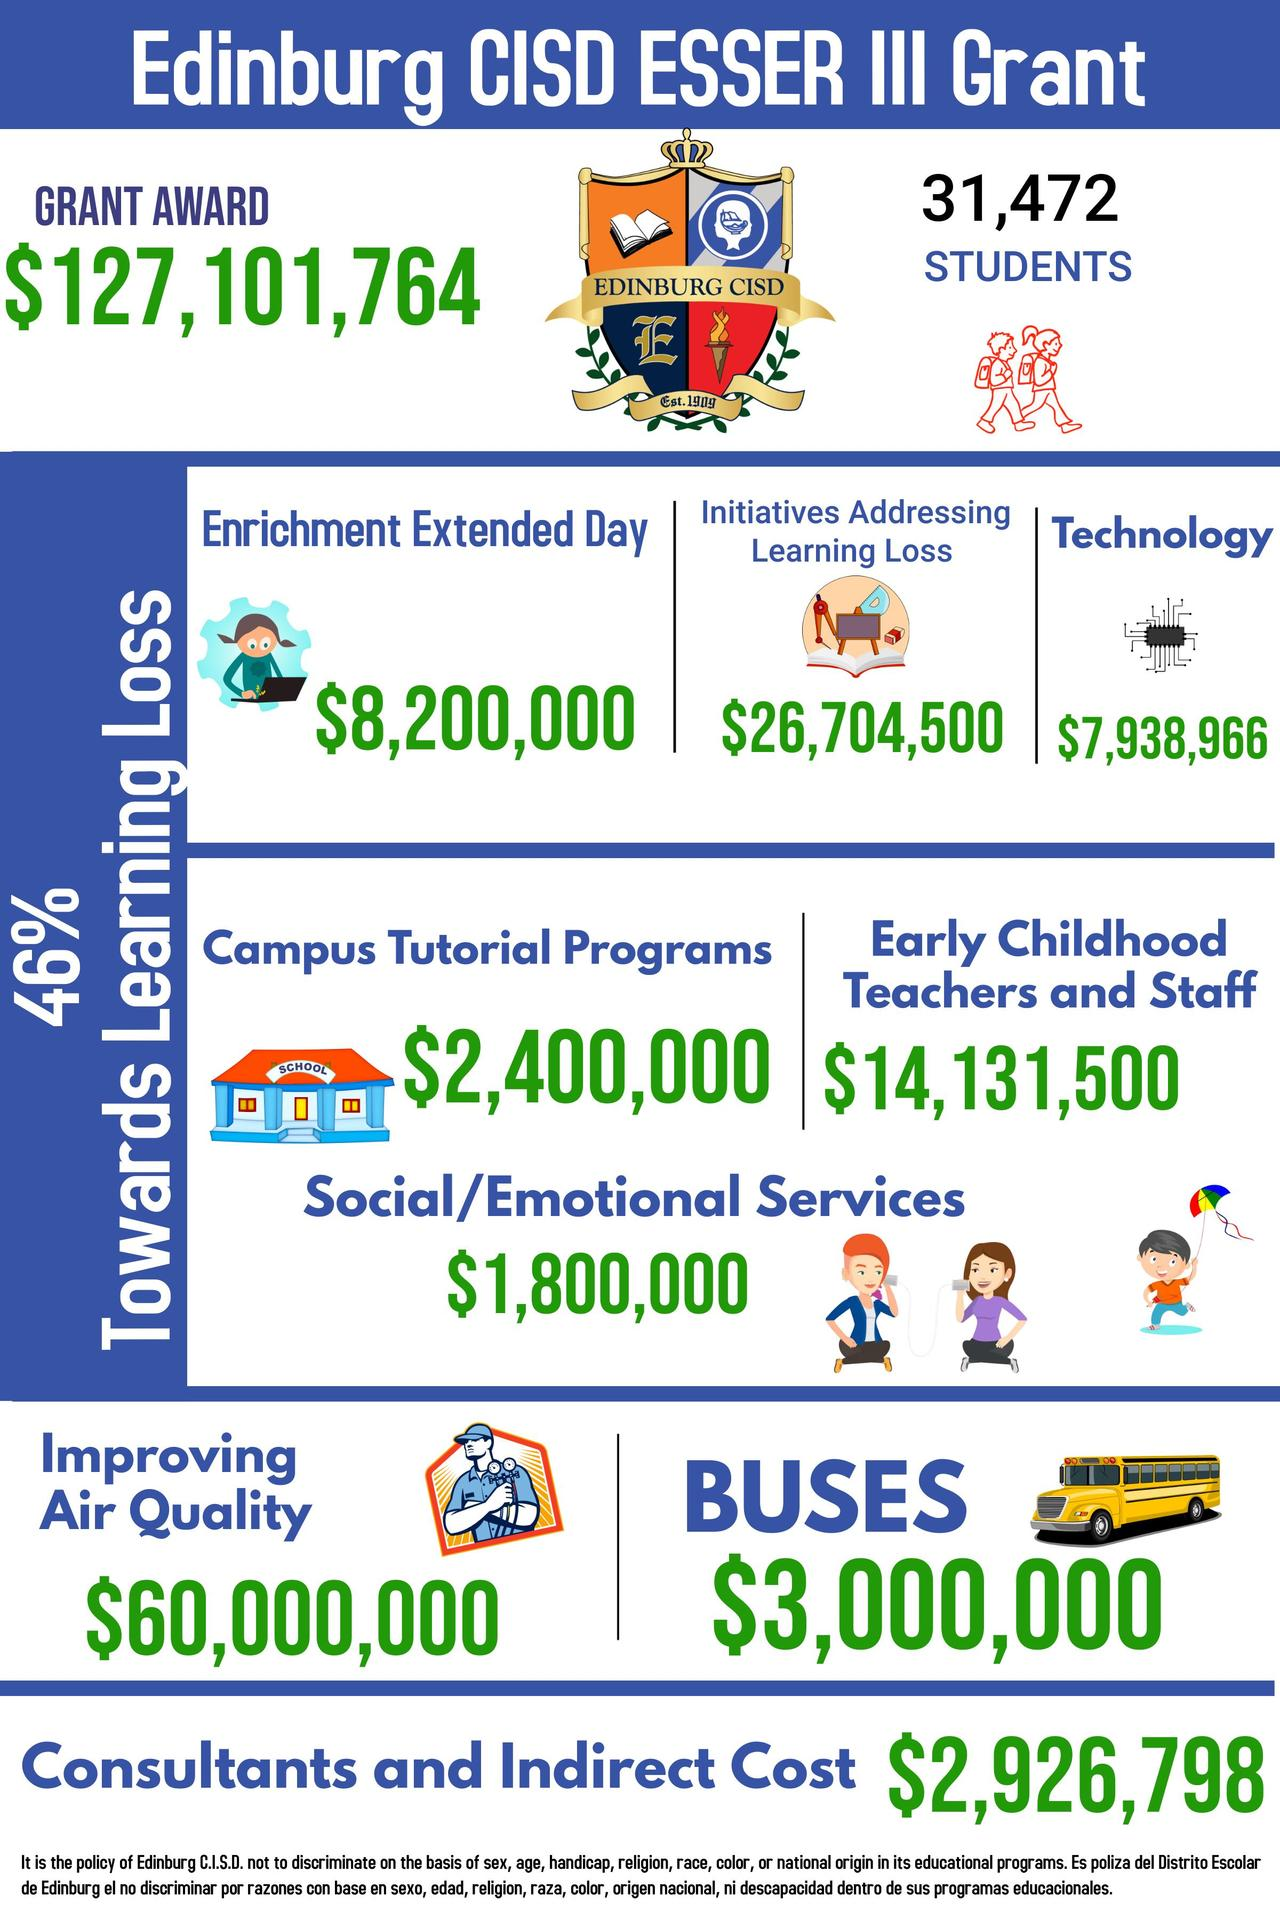 Edinburg CISD ESSER III Grant.   Grant Award 127101764.  31472 students.  46% towards learning loss.  Enrichment Extended Day 8200000.  initiatives addressing learning loss 26704500.  7938966 technology.  Campus Tutorial Programs 2400000.  Early Childhood teachers and staff 14131500.  social emotional services1800000.  improving air quality 60000000.  buses 3000000.  consultants and indirect cost 2926798